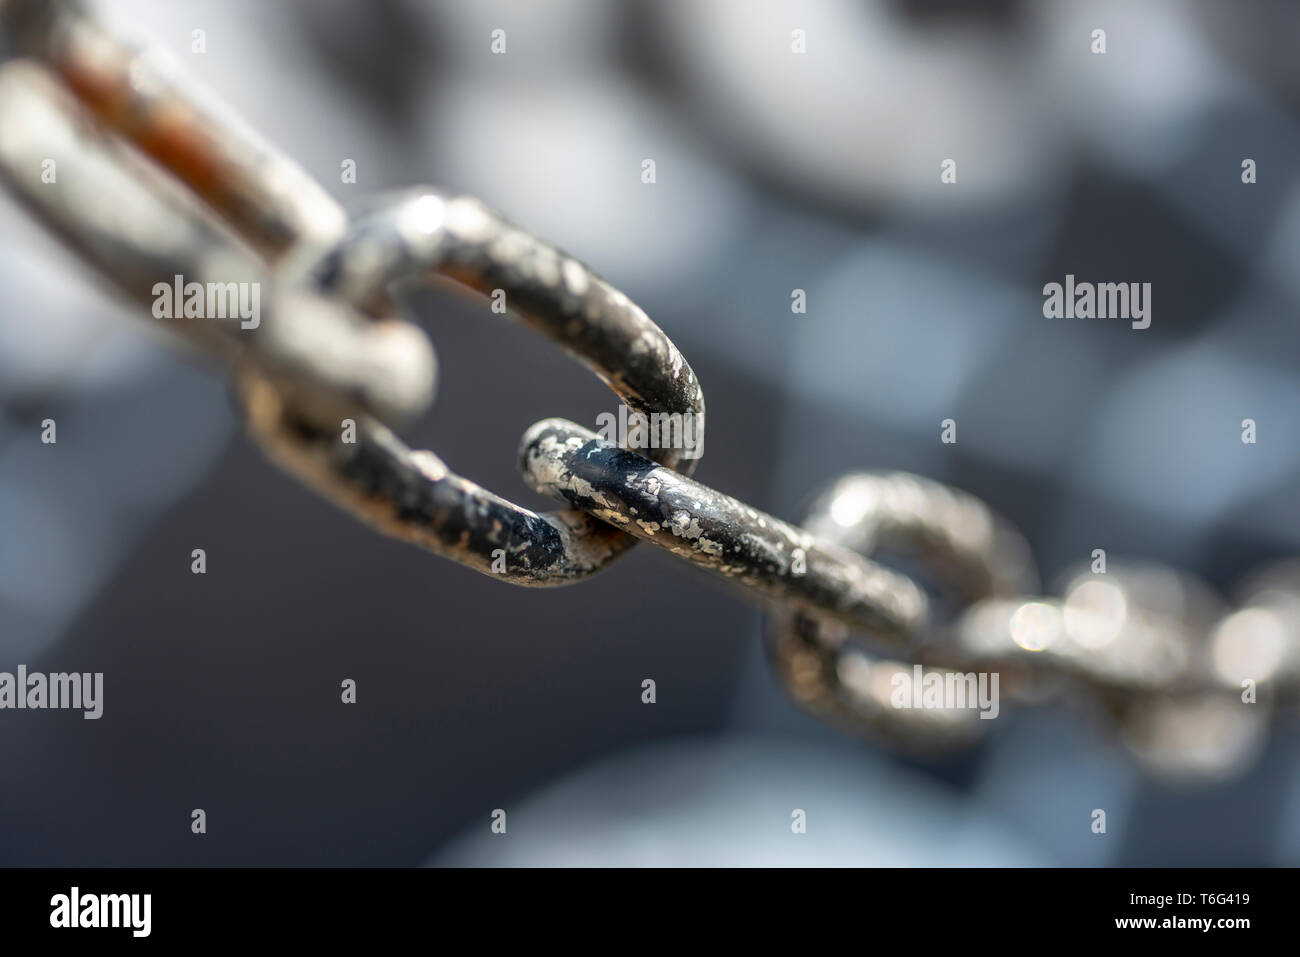 Chain on a blurred background - Stock Image